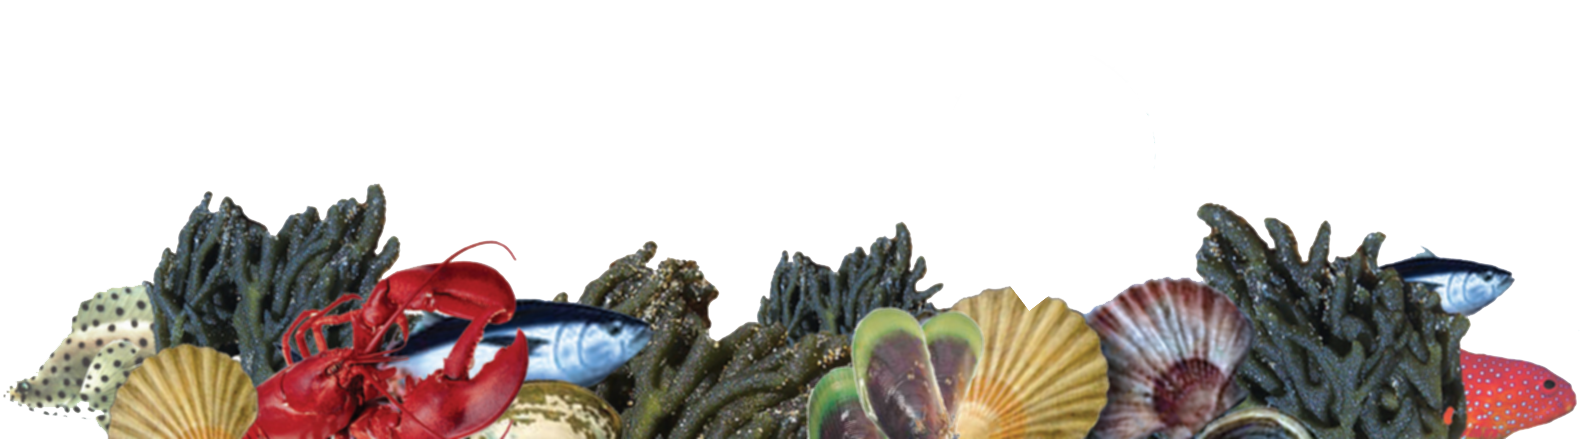 Aqua Gardens - live, or fresh and natural seafood, consistent quality, delivered daily, to your door